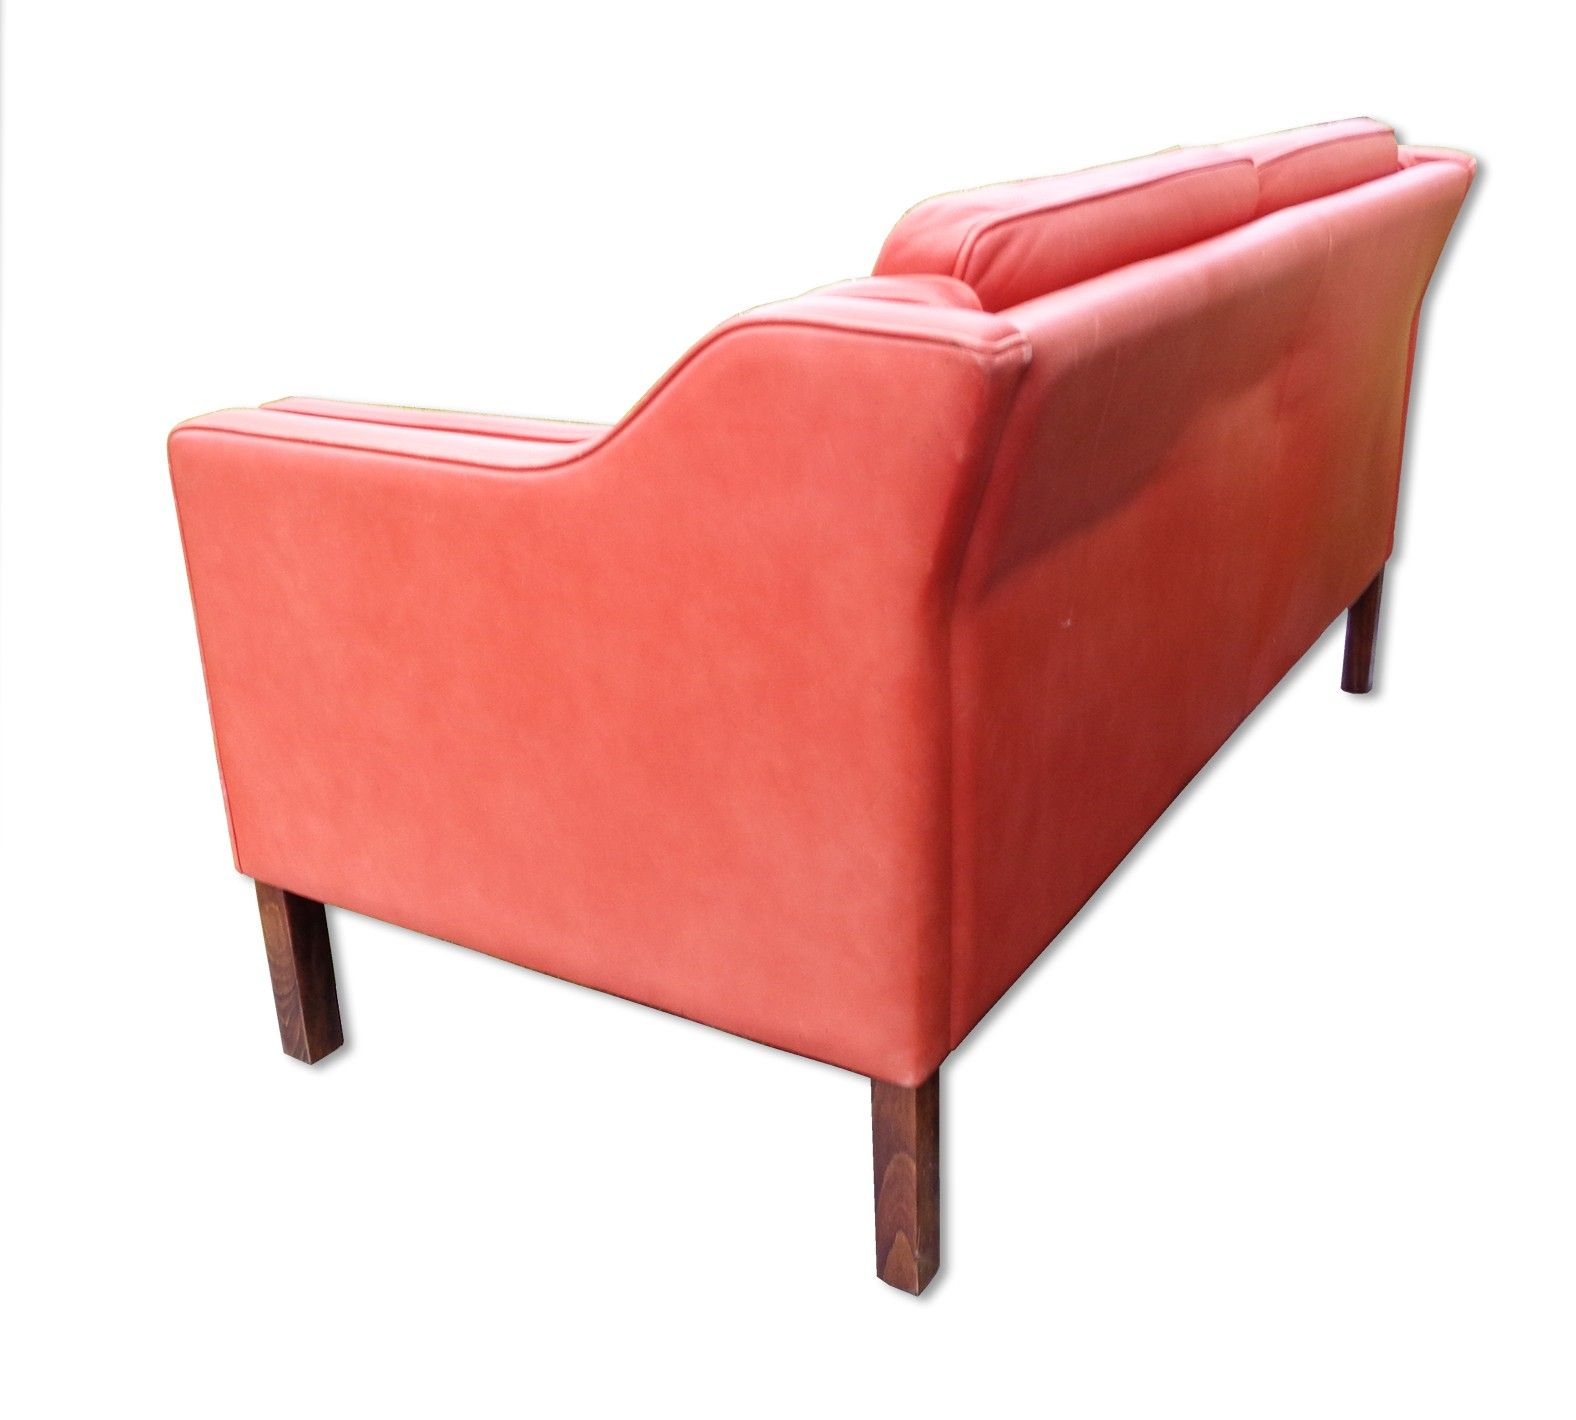 Eva 2 Seater Sofa Upholstered In Leather Produced By Stouby Mobler 1980s Vintagesofa Upholstered Sofa 2 Seater Sofa Sofa